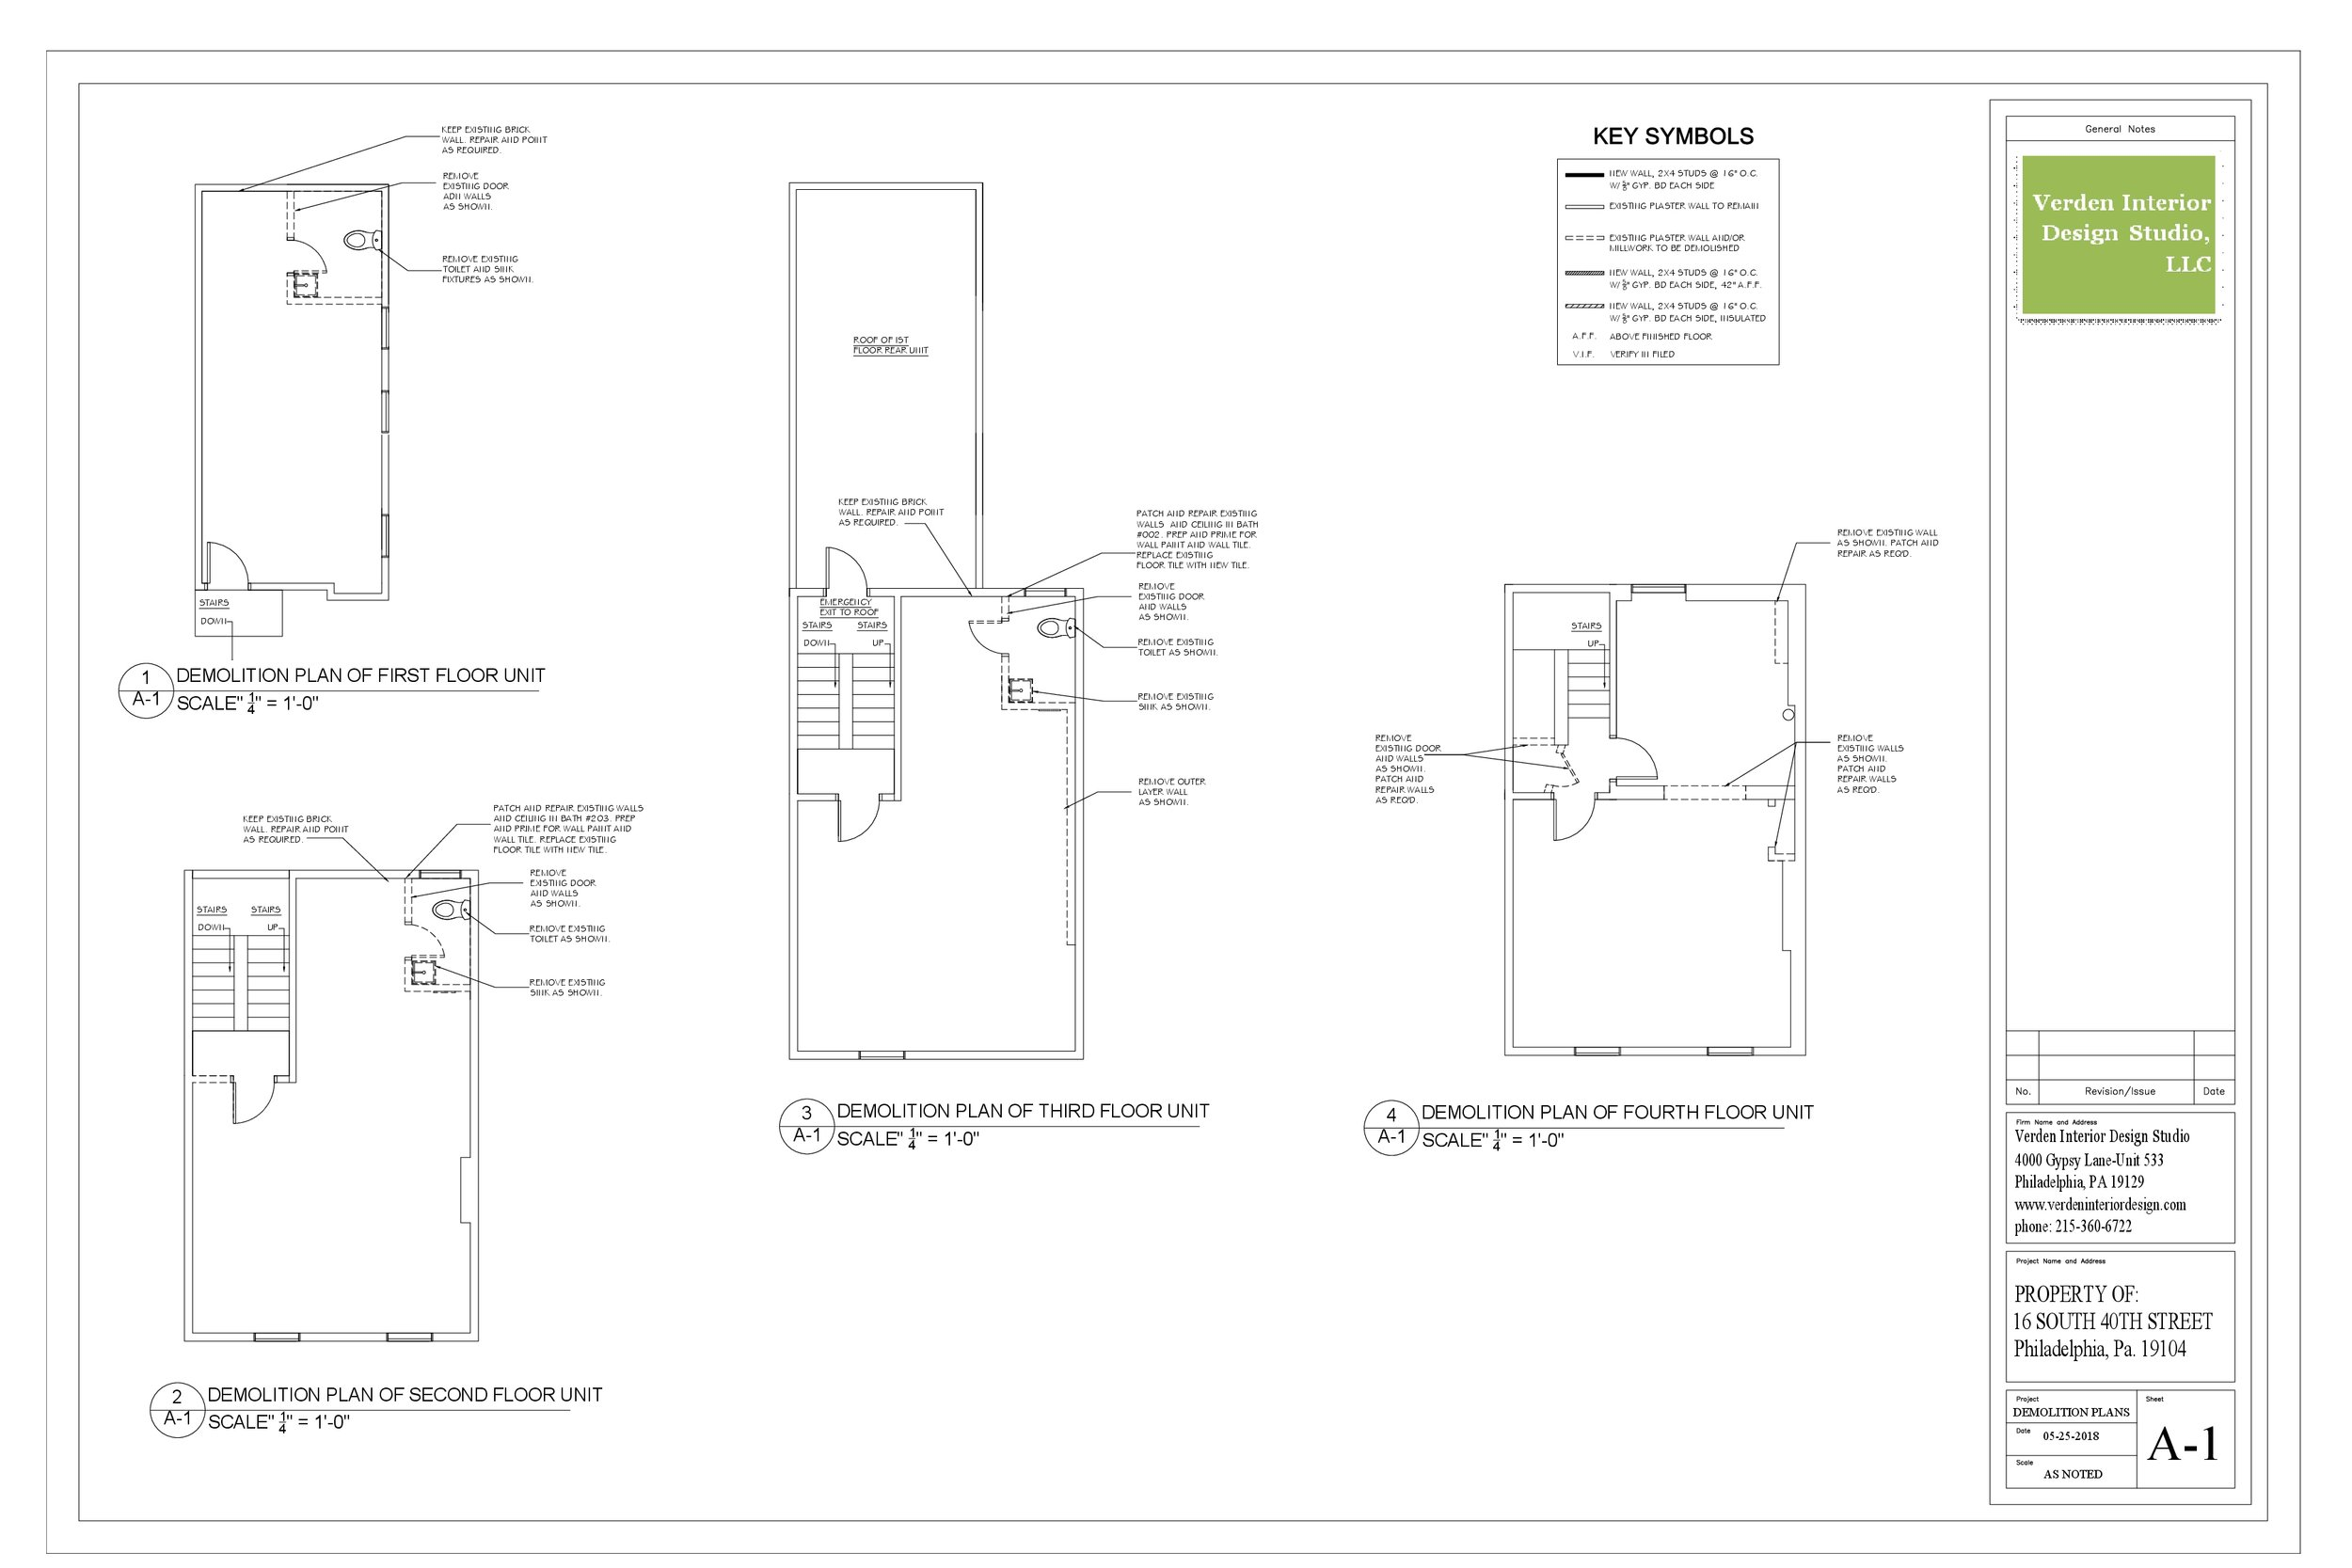 cad space plans_16south40th-A-1.jpg